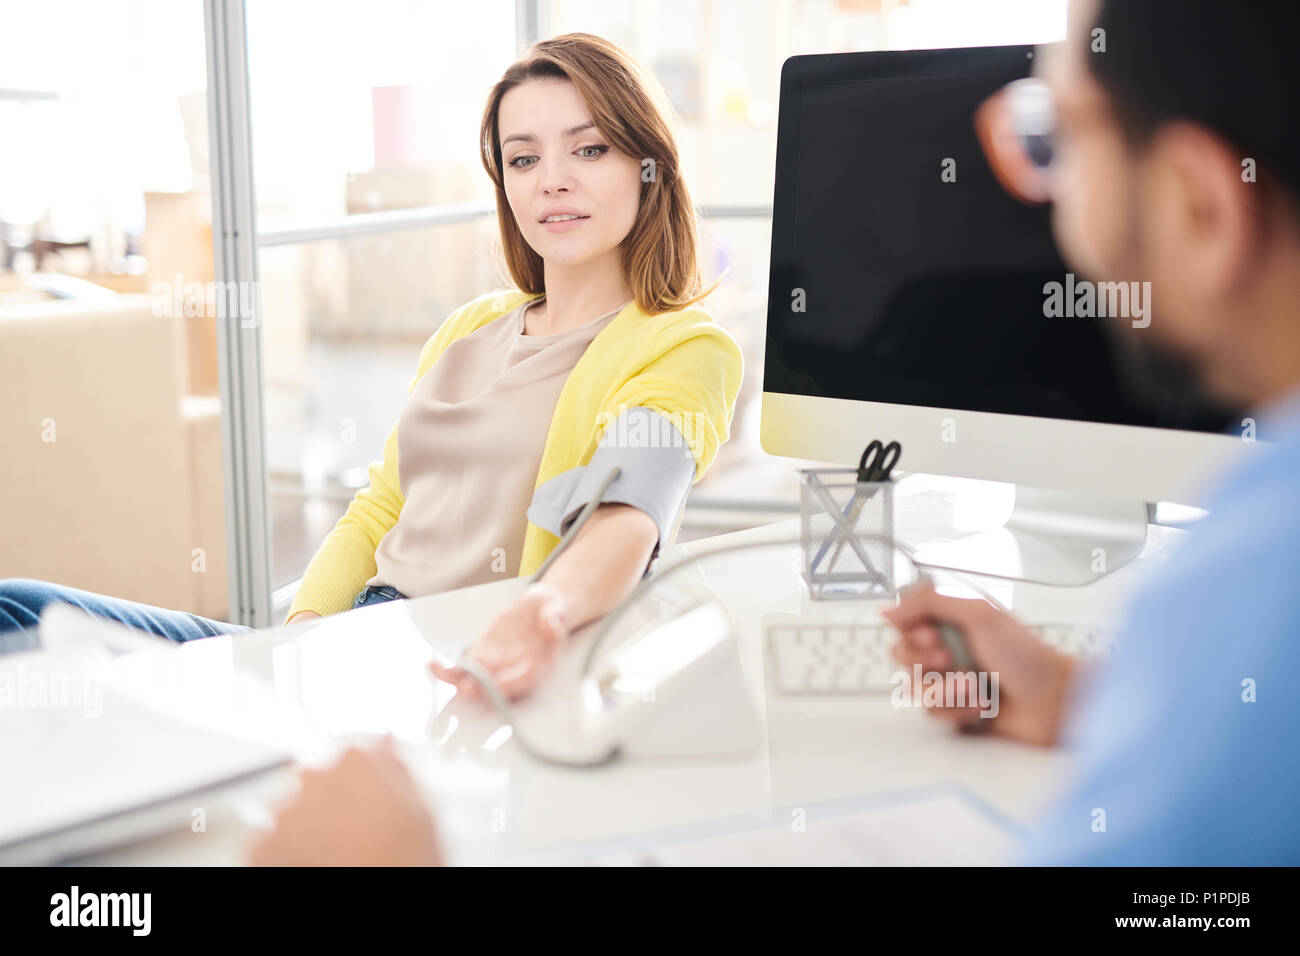 Female Patient in Modern Clinic - Stock Image